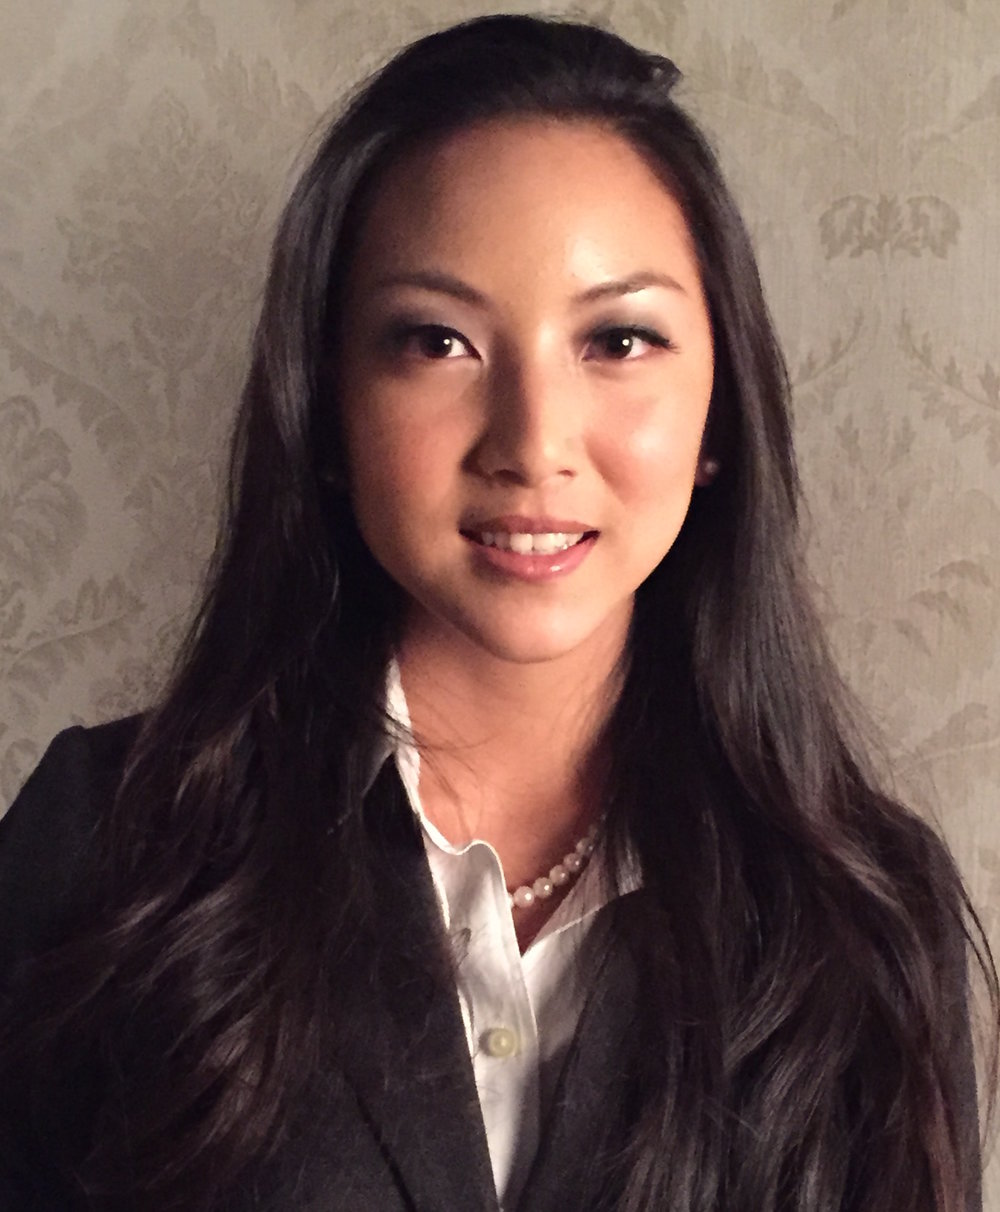 Melissa wun   New York Univeristy